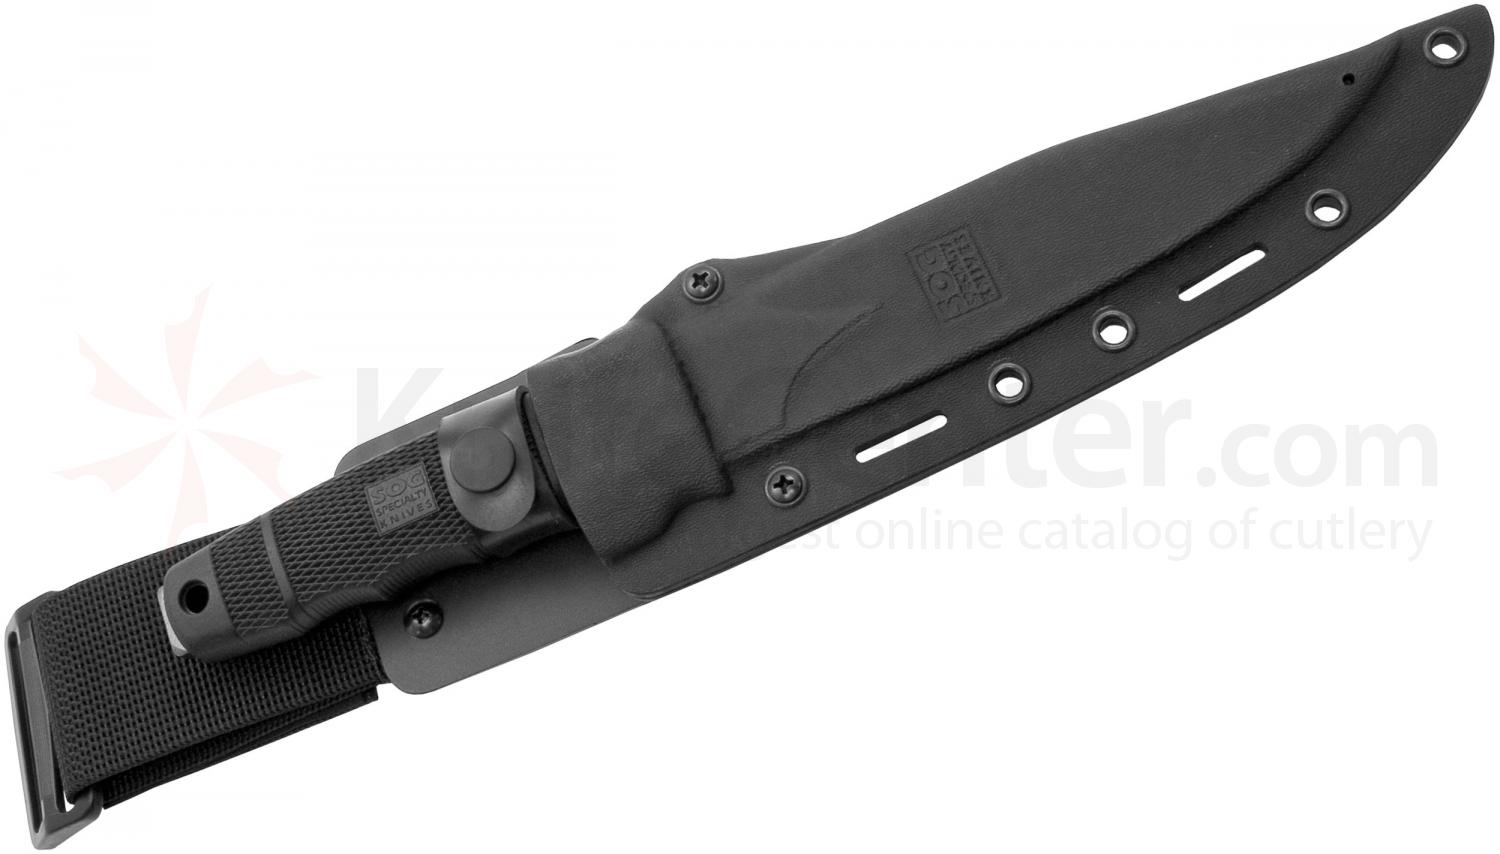 SOG KYD37 Kydex Sheath for Full Size SEAL Knife